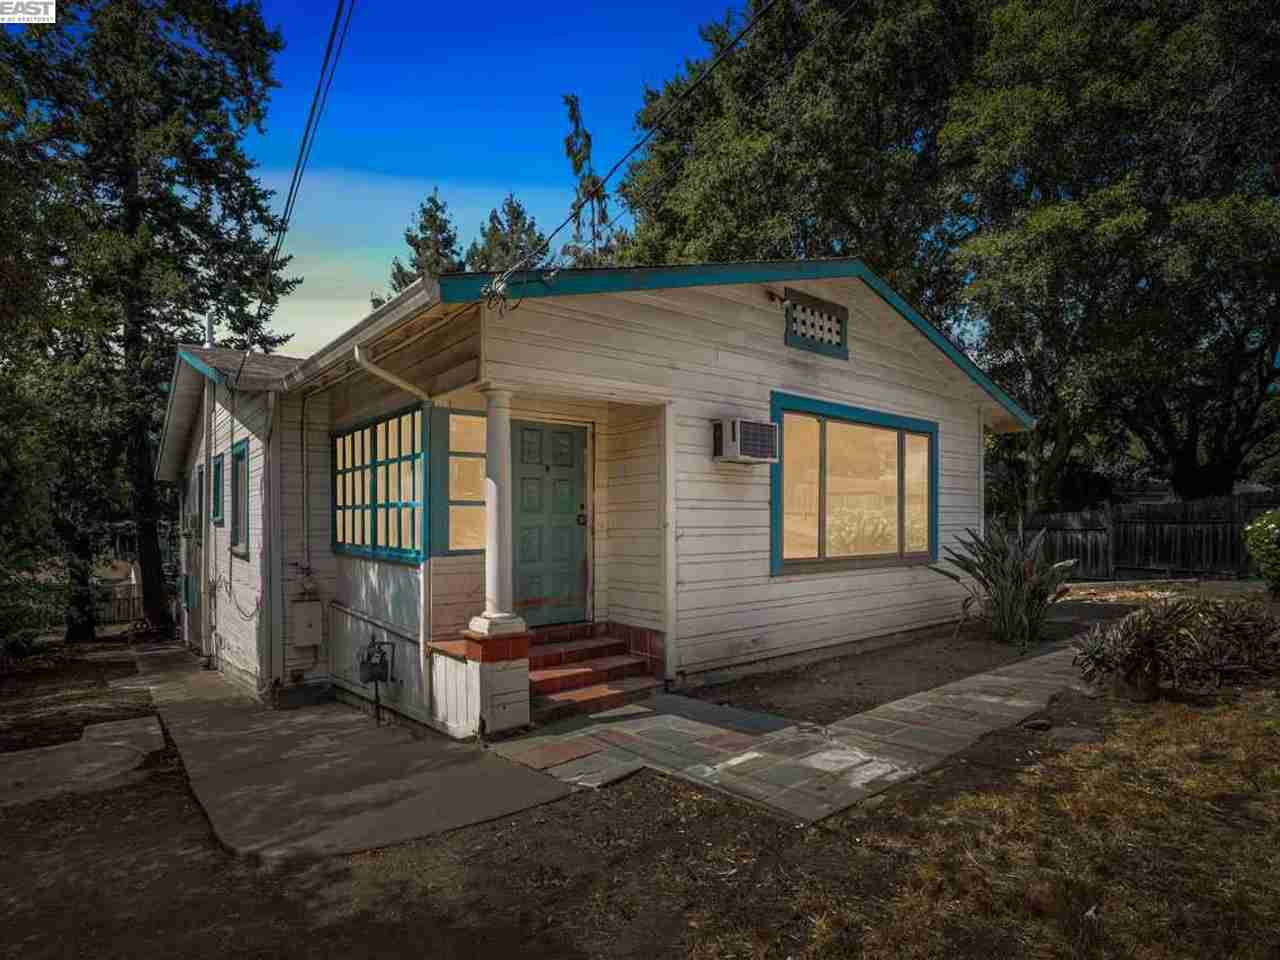 3287 GUIDO ST Oakland, CA, 94602